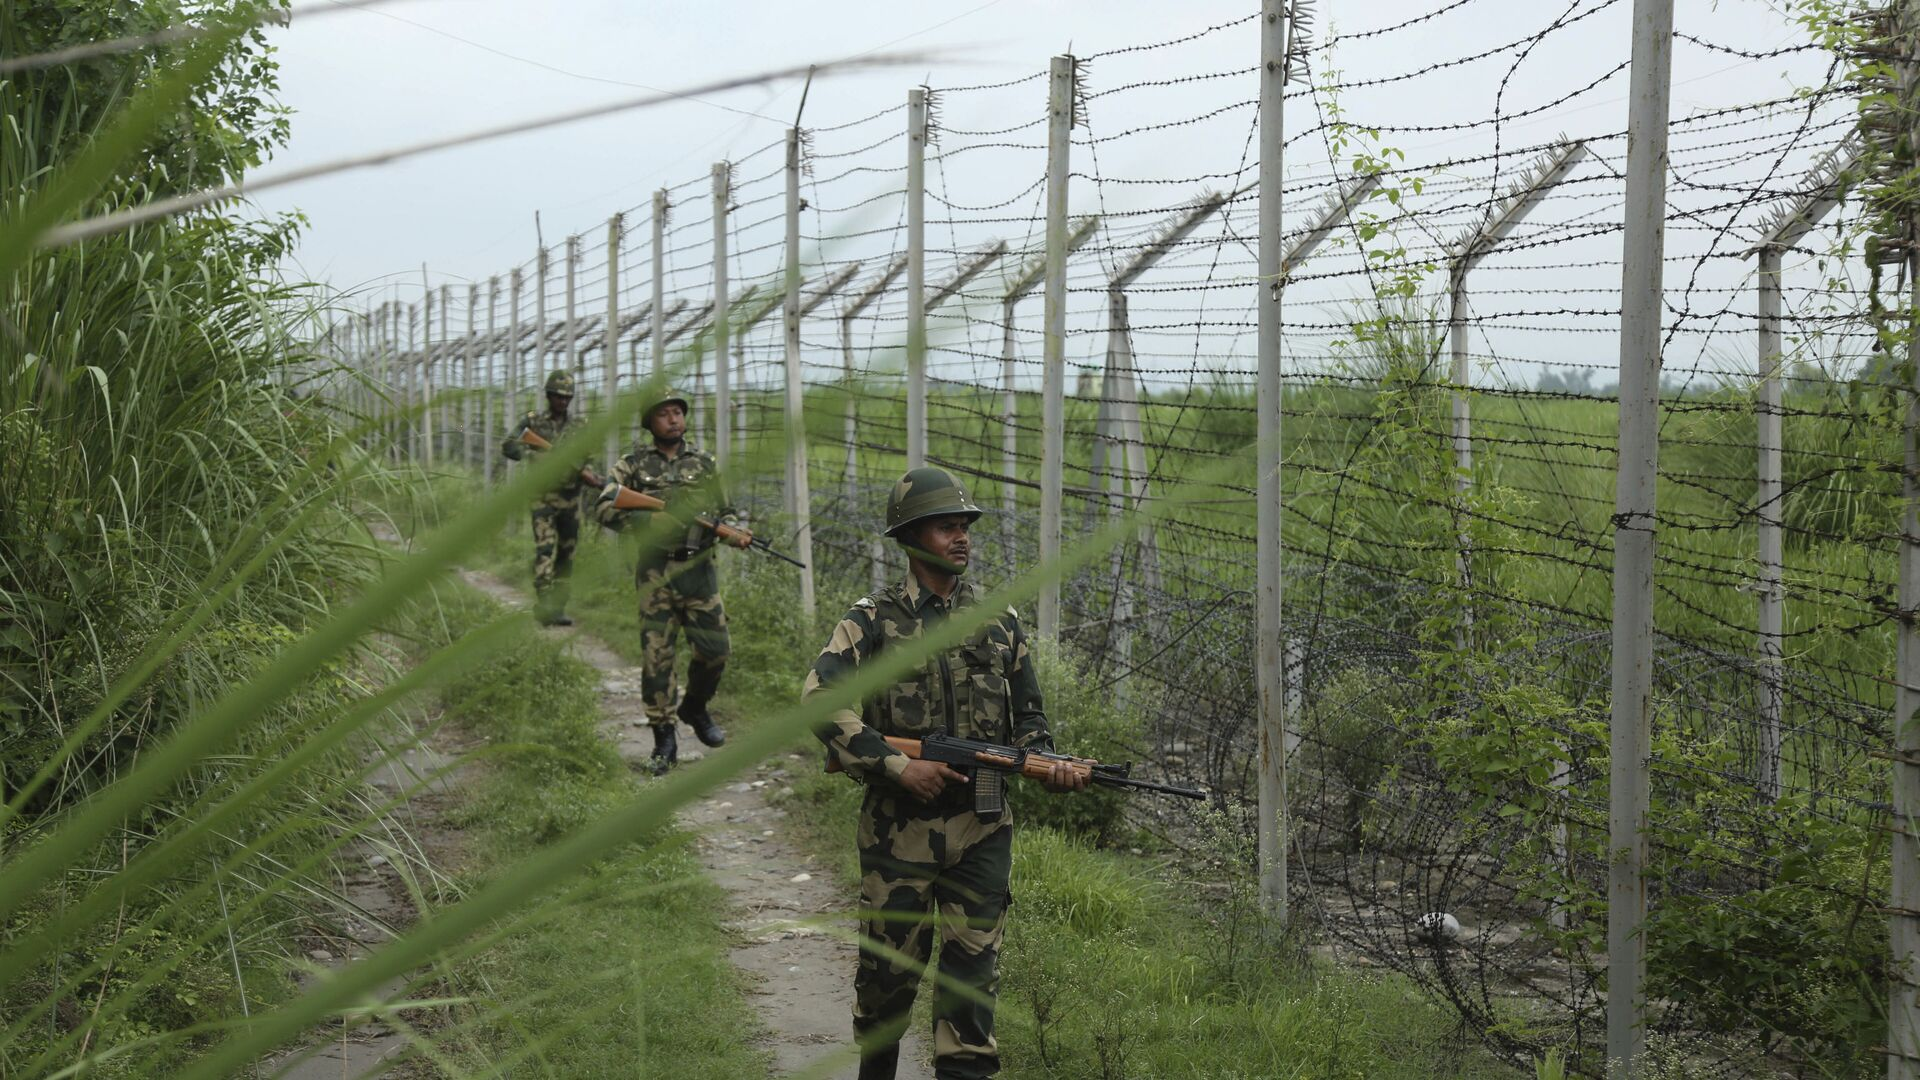 India's Border Security Force (BSF) soldiers patrol near the India Pakistan border fencing at Garkhal in Akhnoor, about 35 kilometers (22 miles) west of Jammu, India, Tuesday, Aug.13, 2019 - Sputnik International, 1920, 14.10.2021